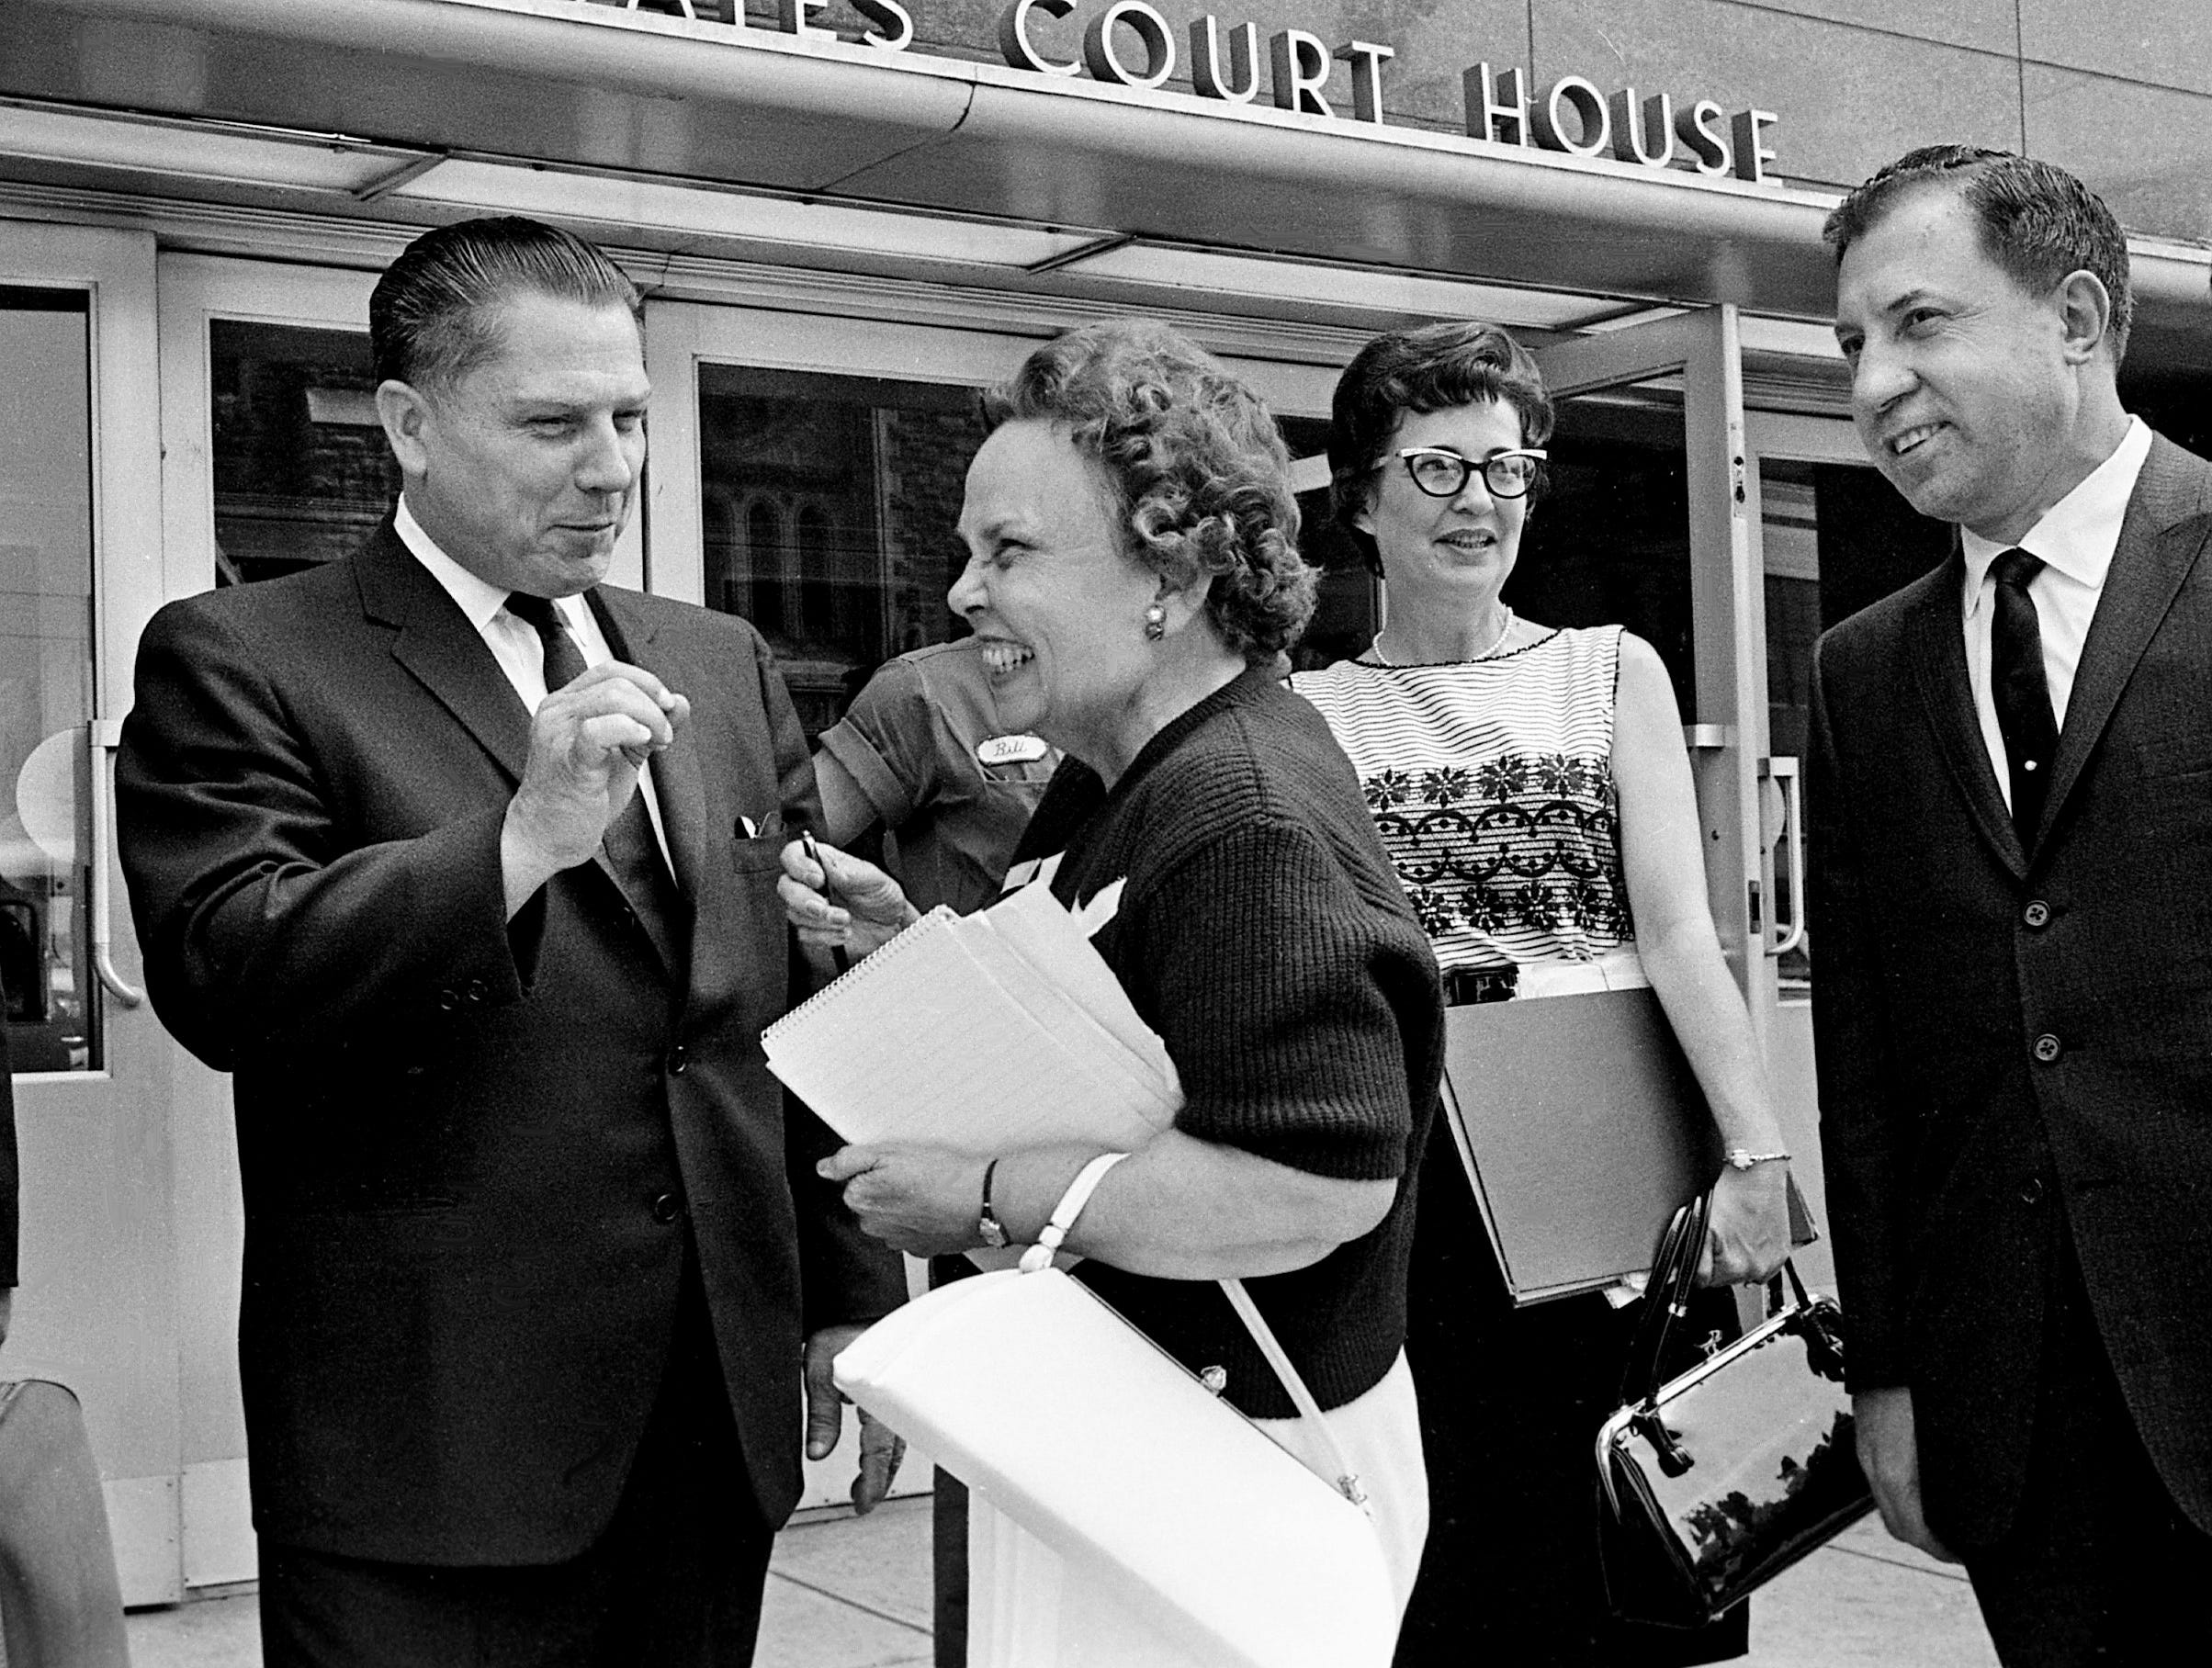 Teamsters President James Hoffa, left, answers a question from Tennessean reporter Nellie Kenyon in front of the federal courthouse in Nashville on July 22, 1963. Hoffa and six other defendants lost the first round in their fight for dismissal of a federal indictment charging them with jury tampering.